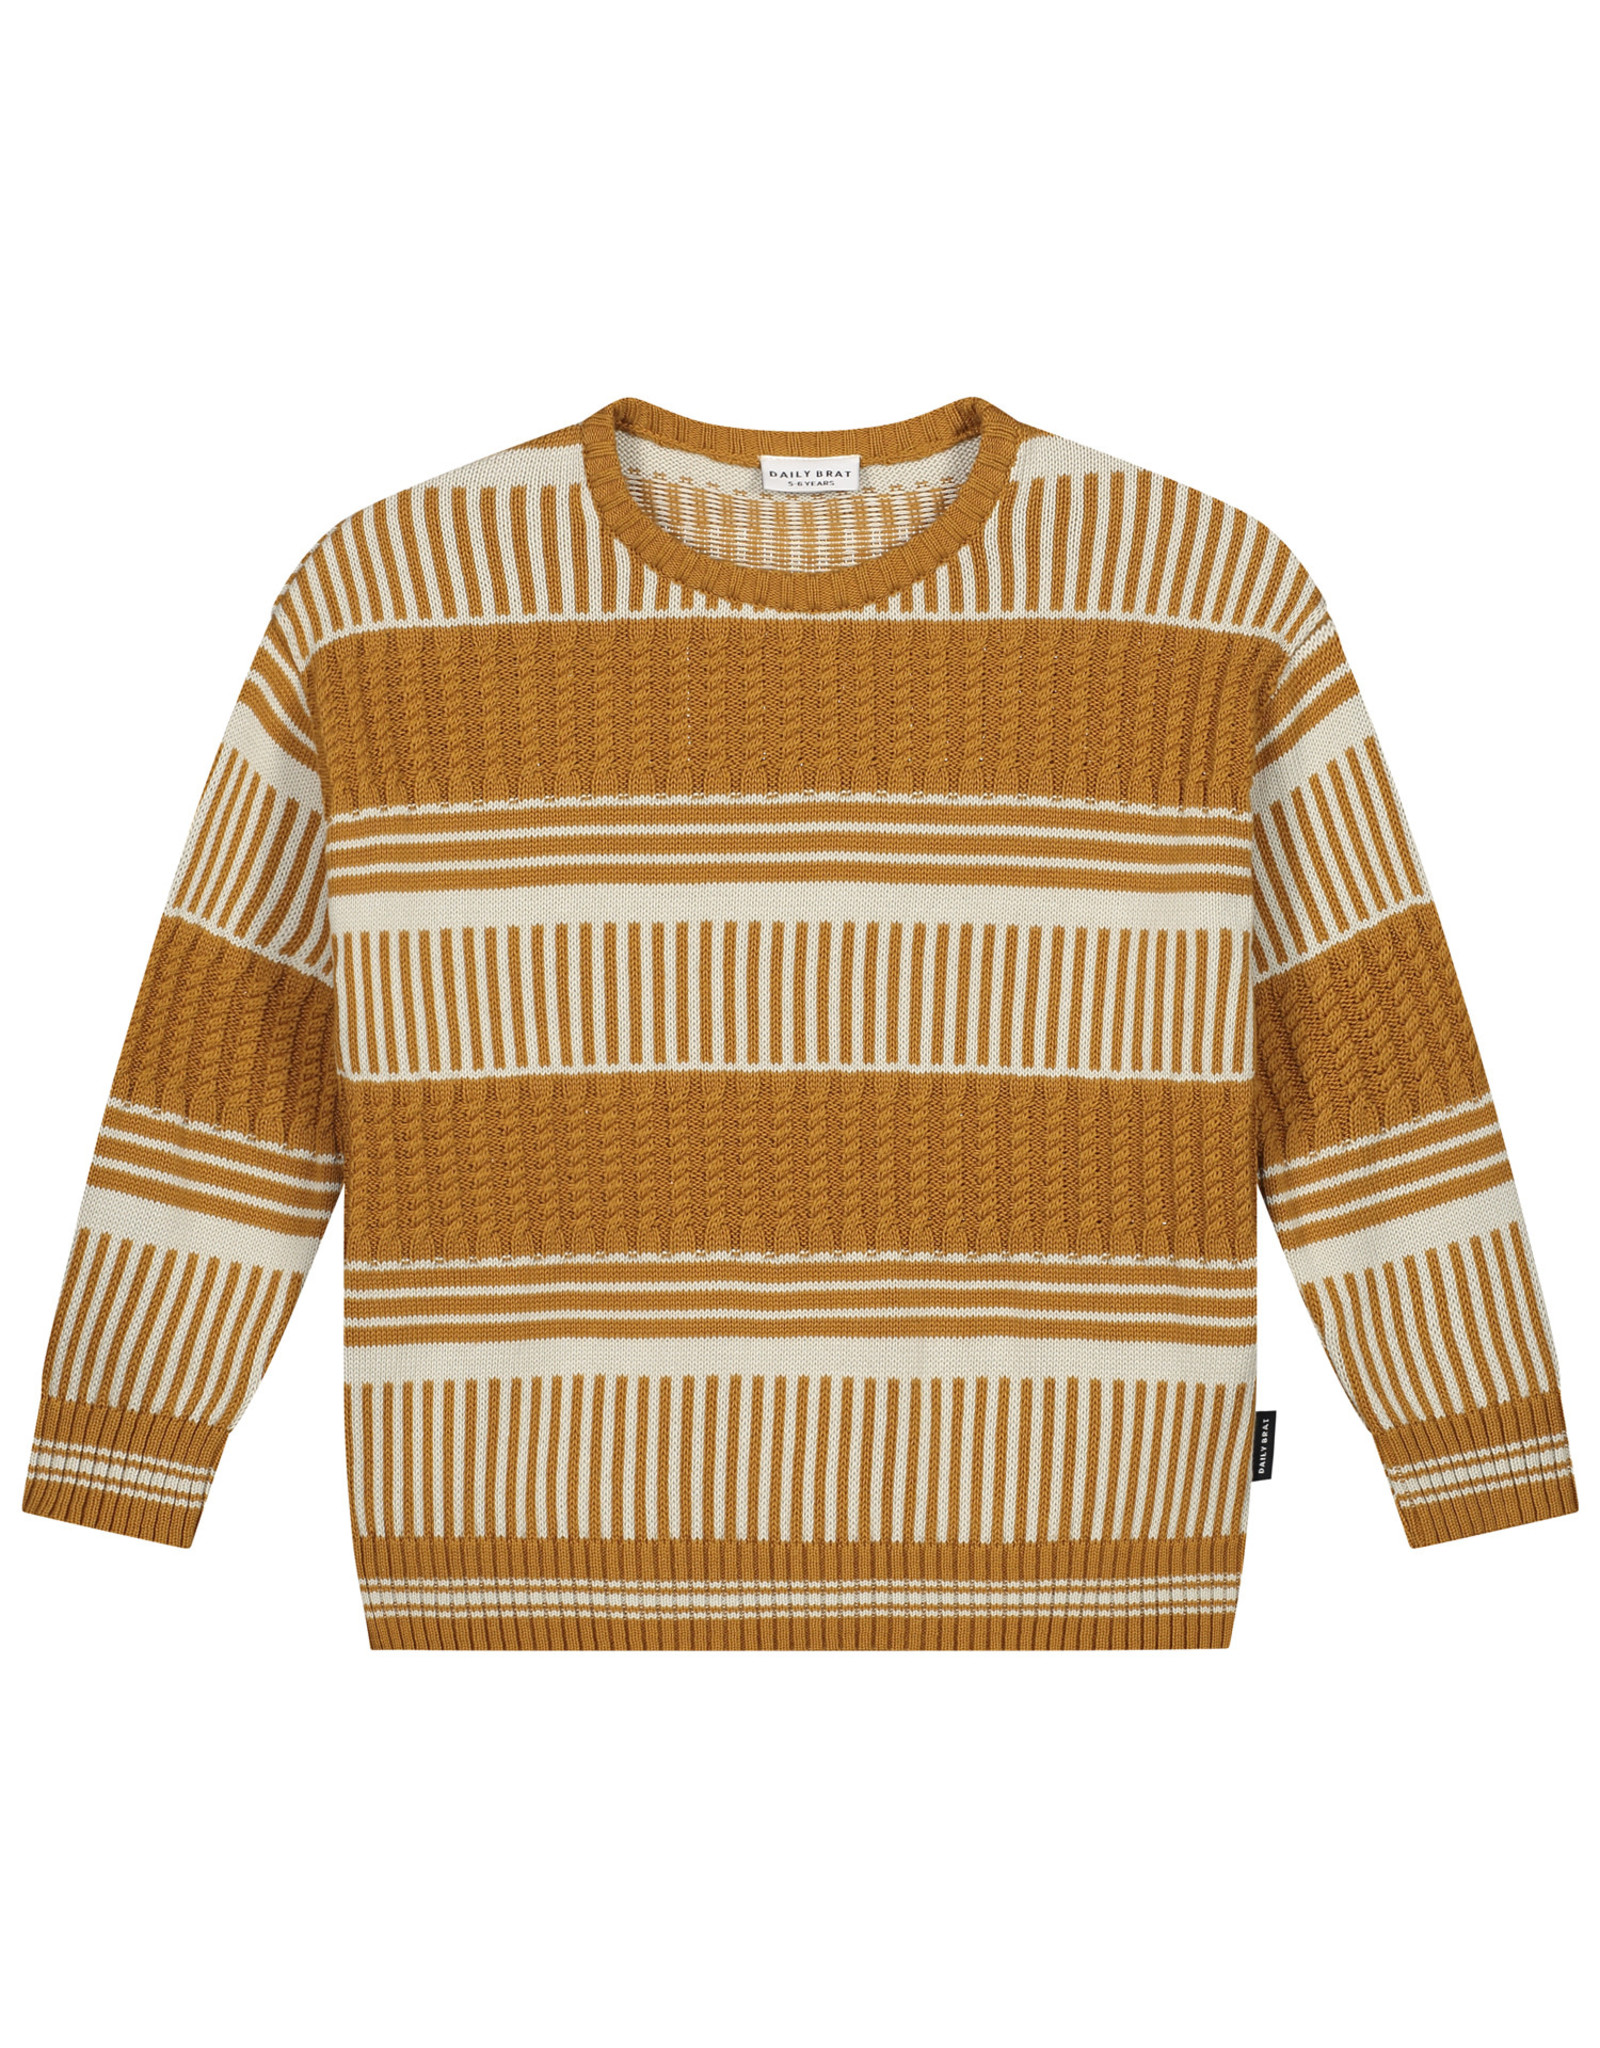 Daily Brat River knitted sweater sandstone